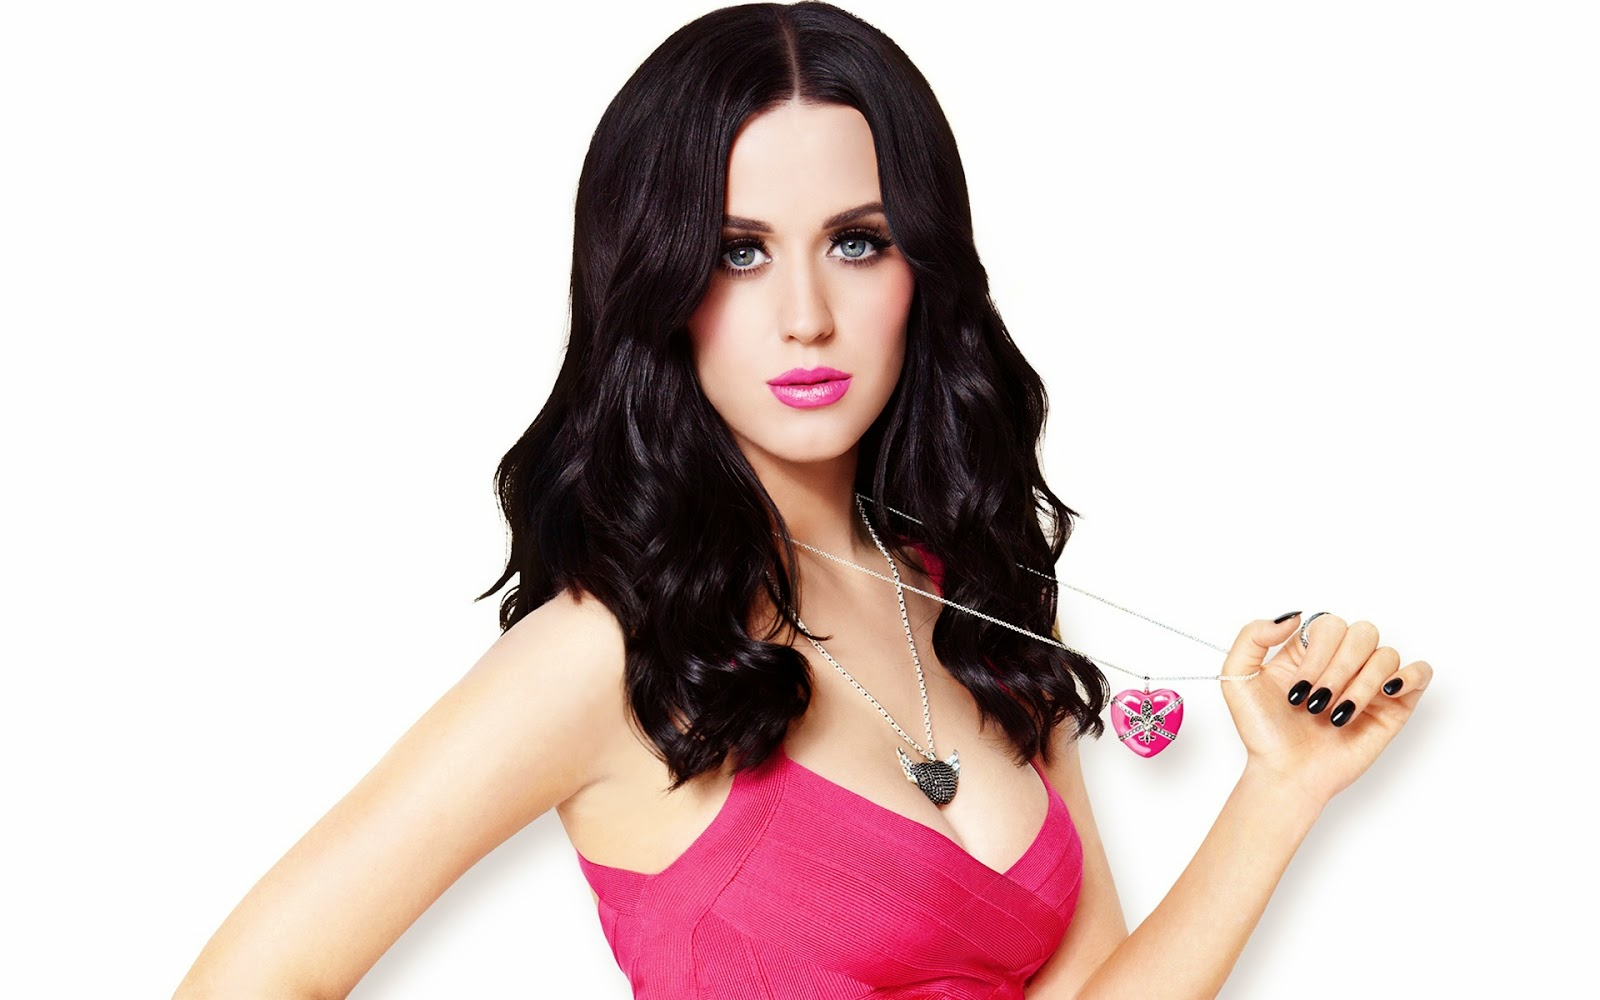 Katy Perry-Biografia e fotos